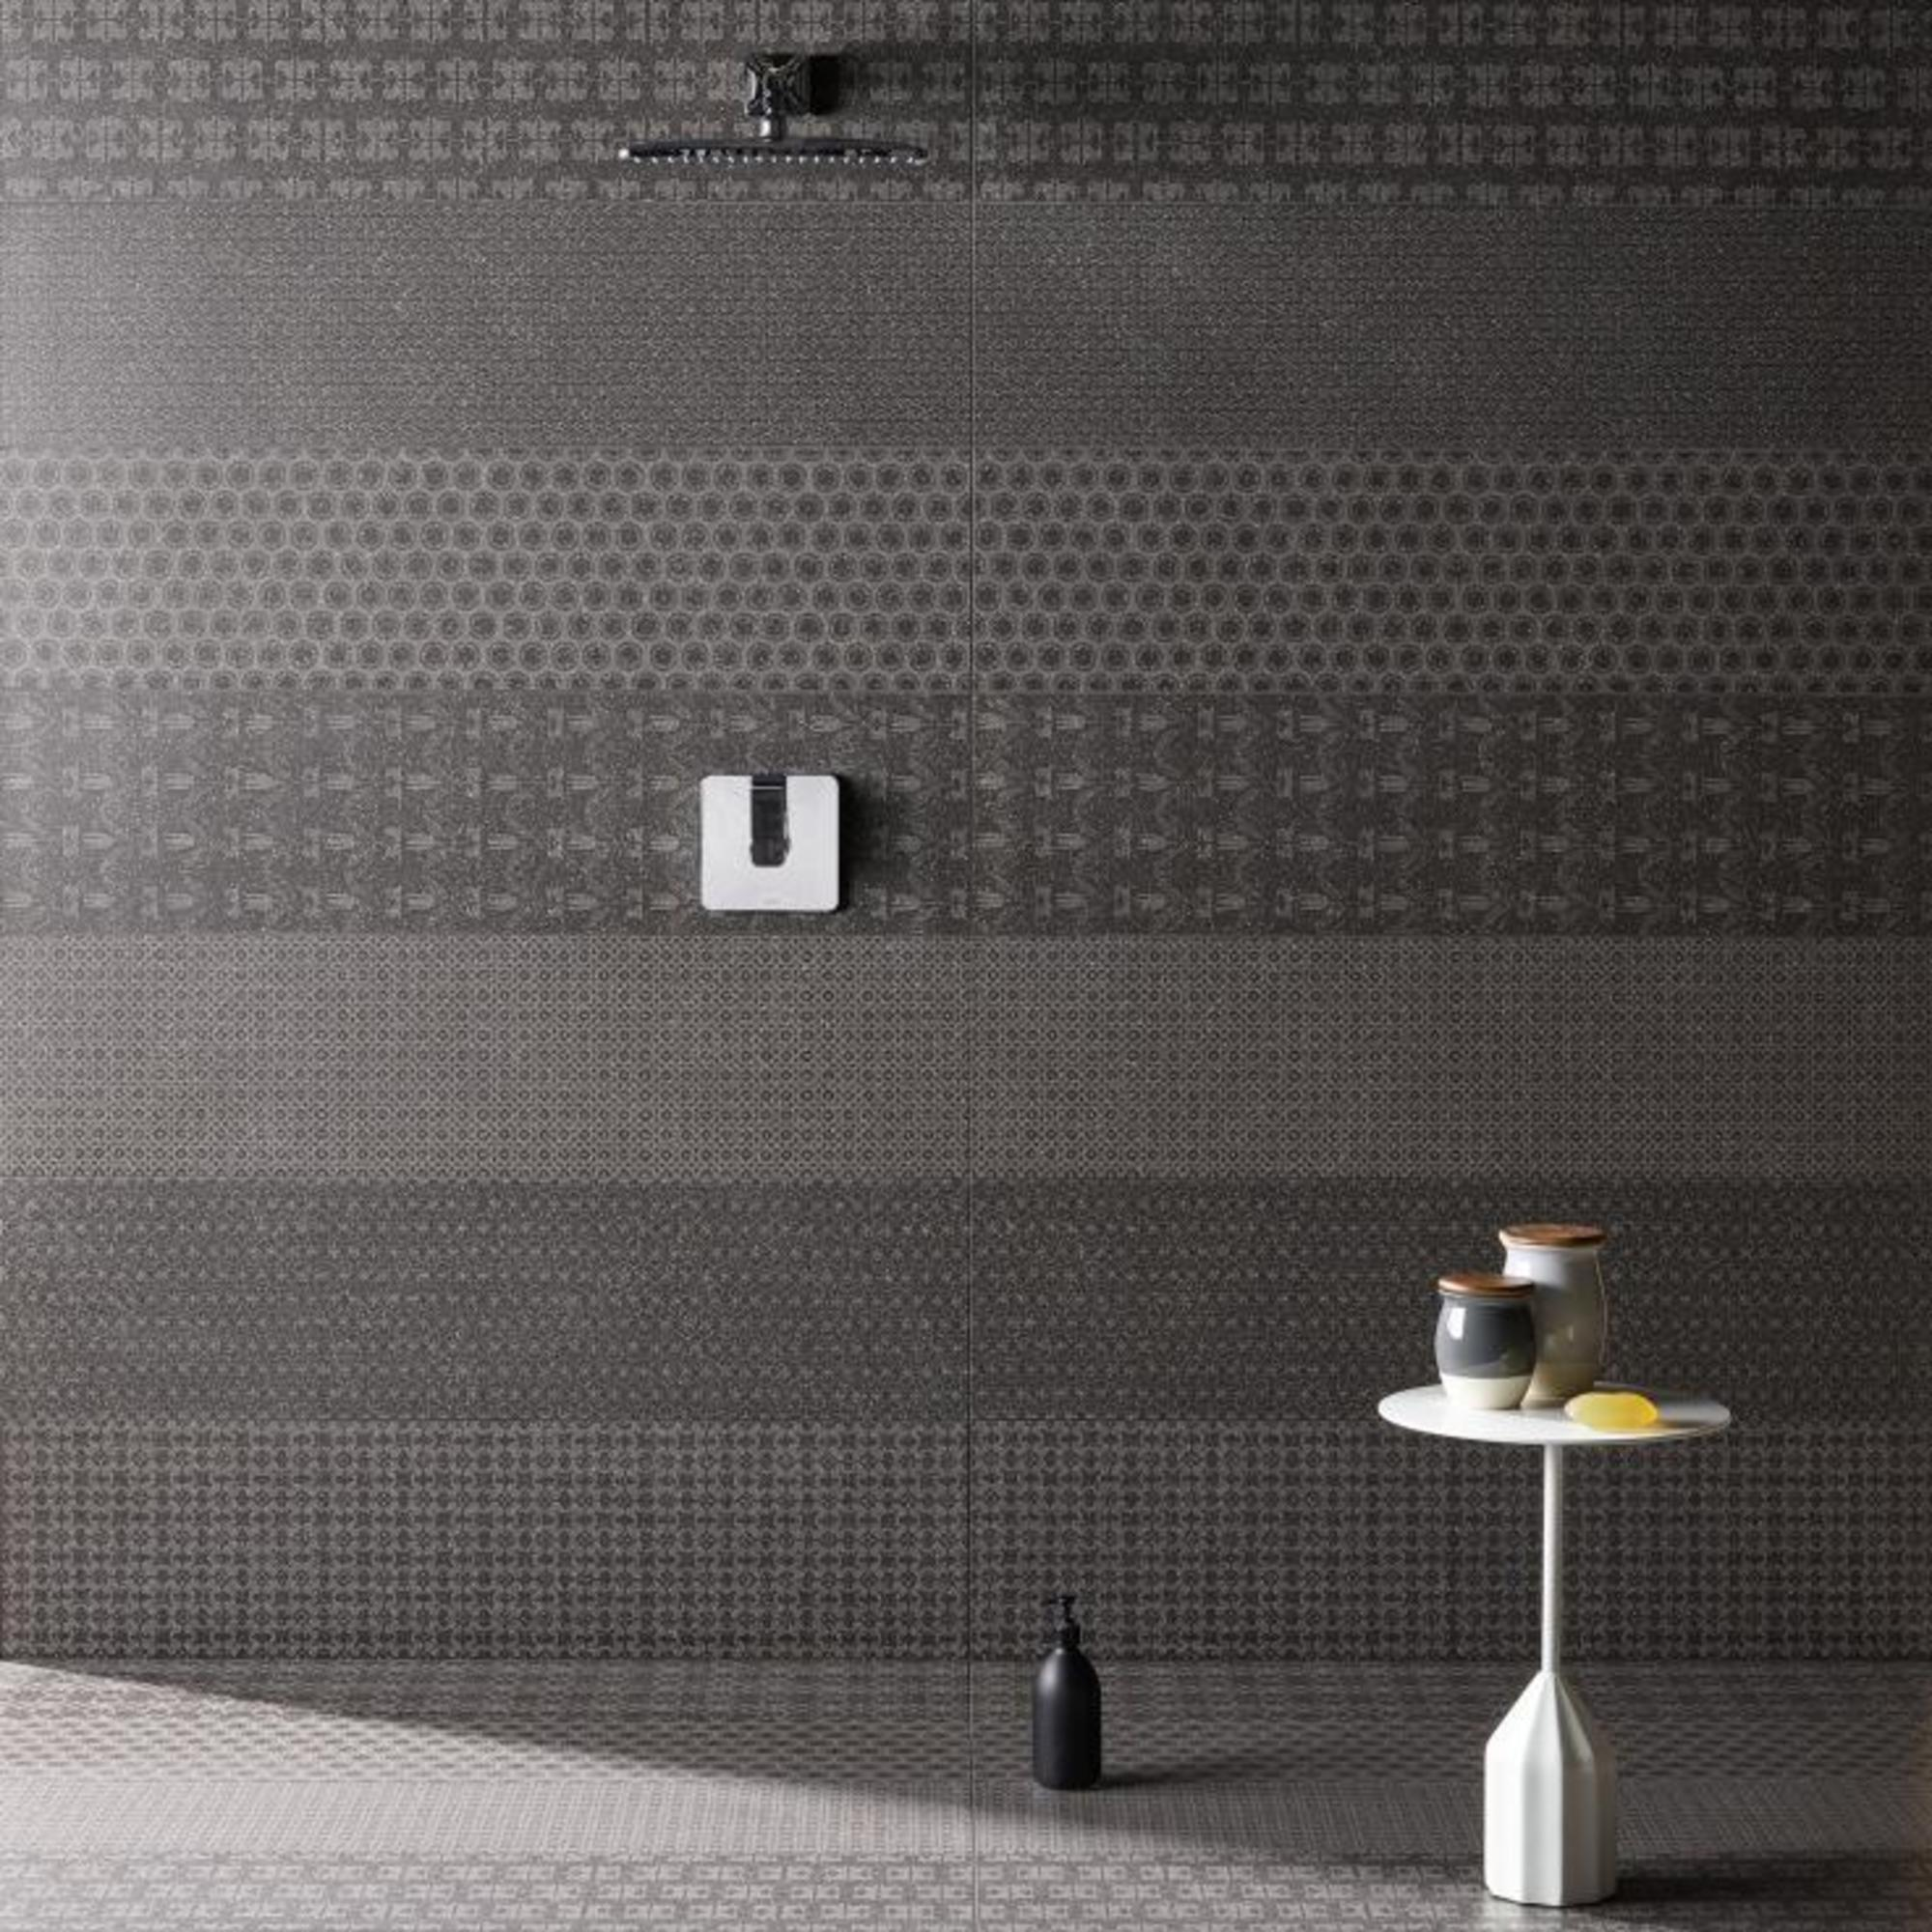 MUTINA ceramiche & design Cover Patricia Urquiola poppy black + stitch black + rounded black + boucle black + nouveau black + daphne black